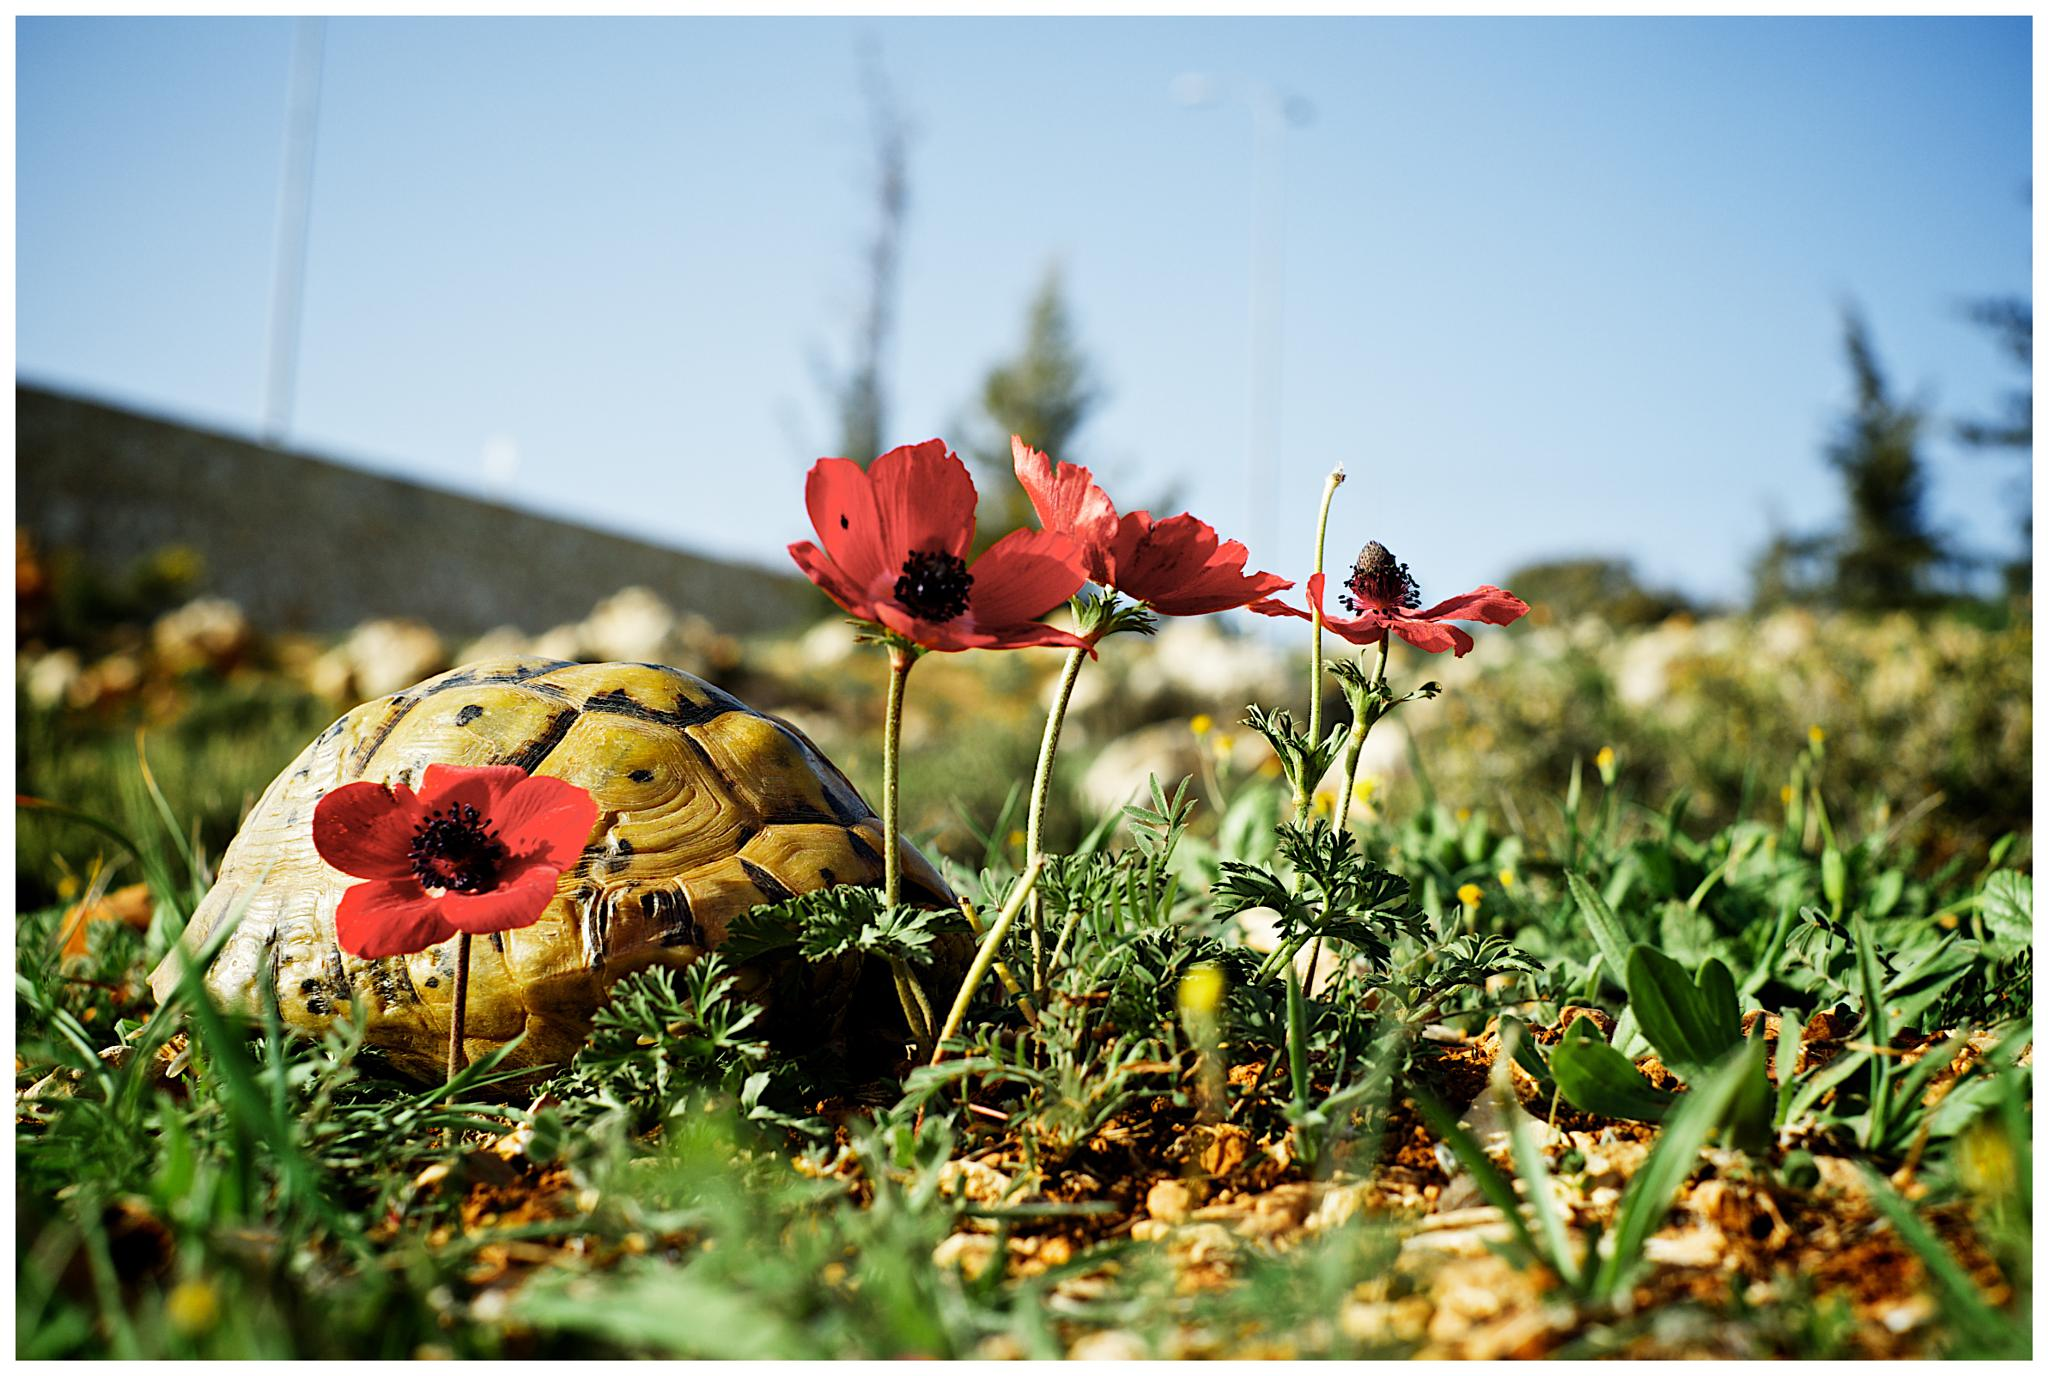 Turtle and red flowers by David Plotnikov